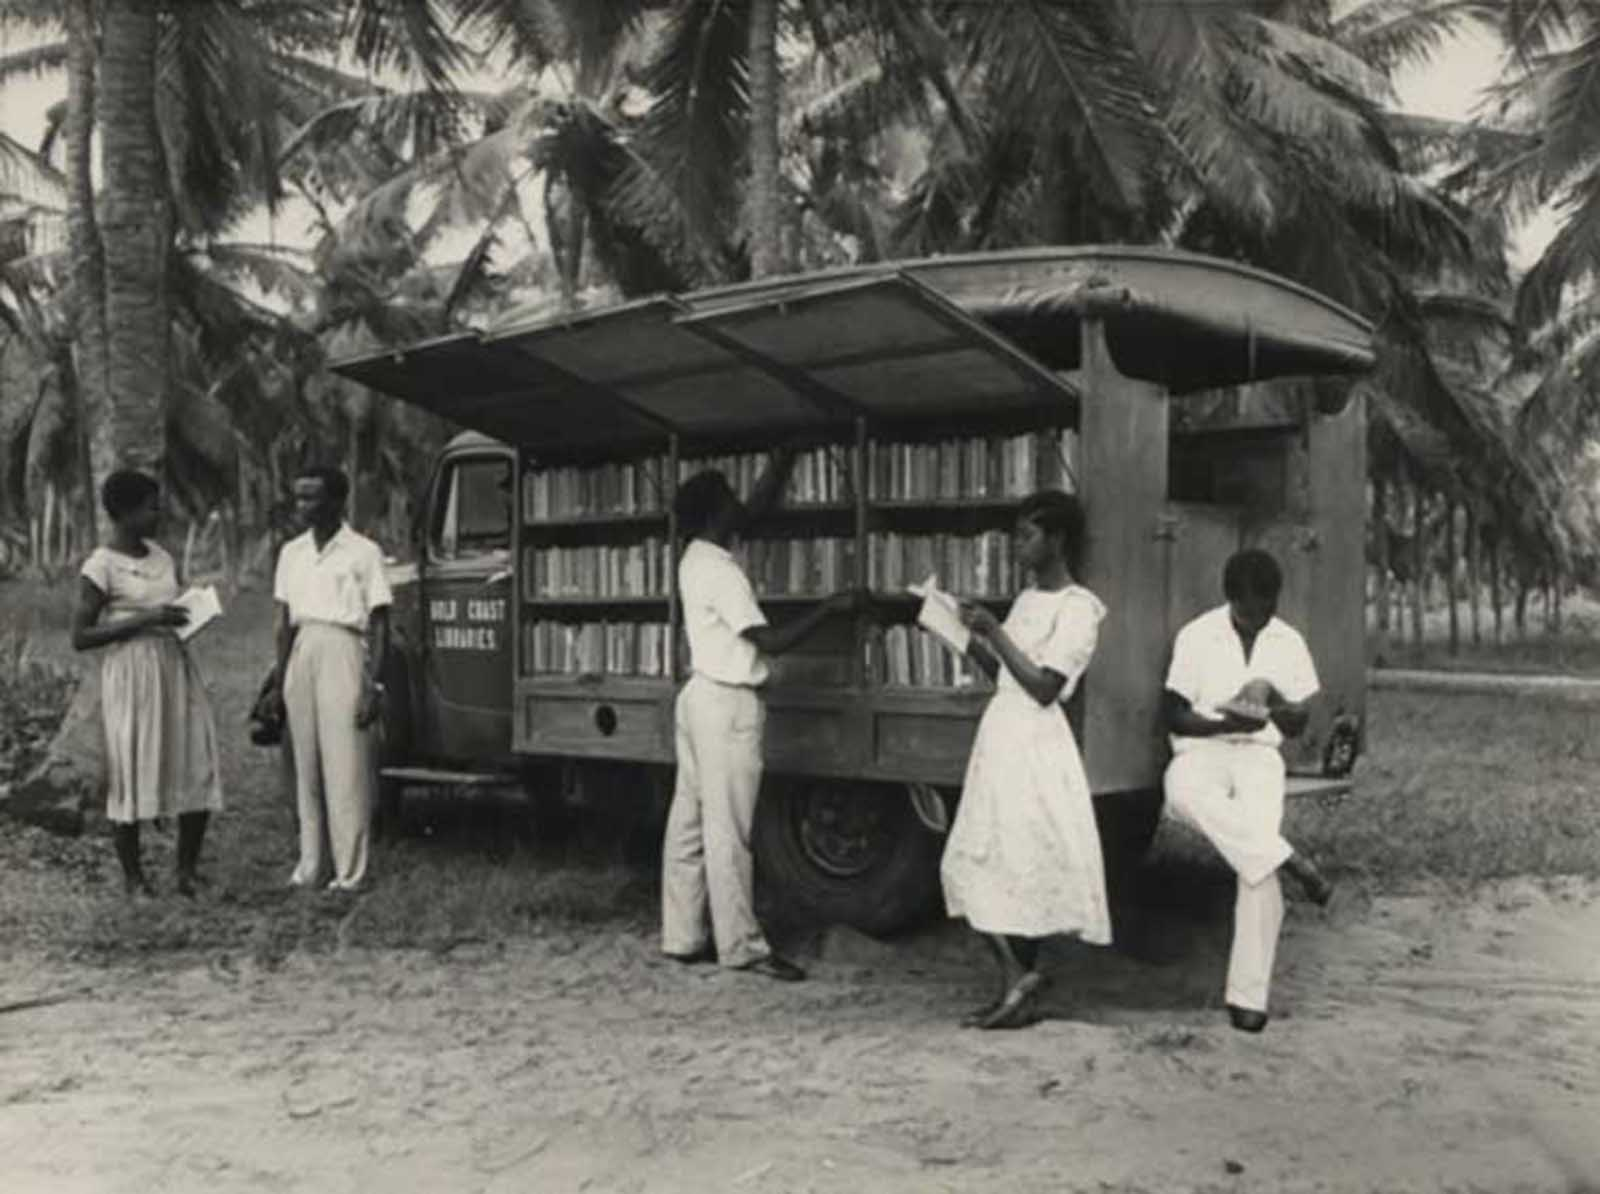 A bookmobile in Accra, Ghana, 1950s.